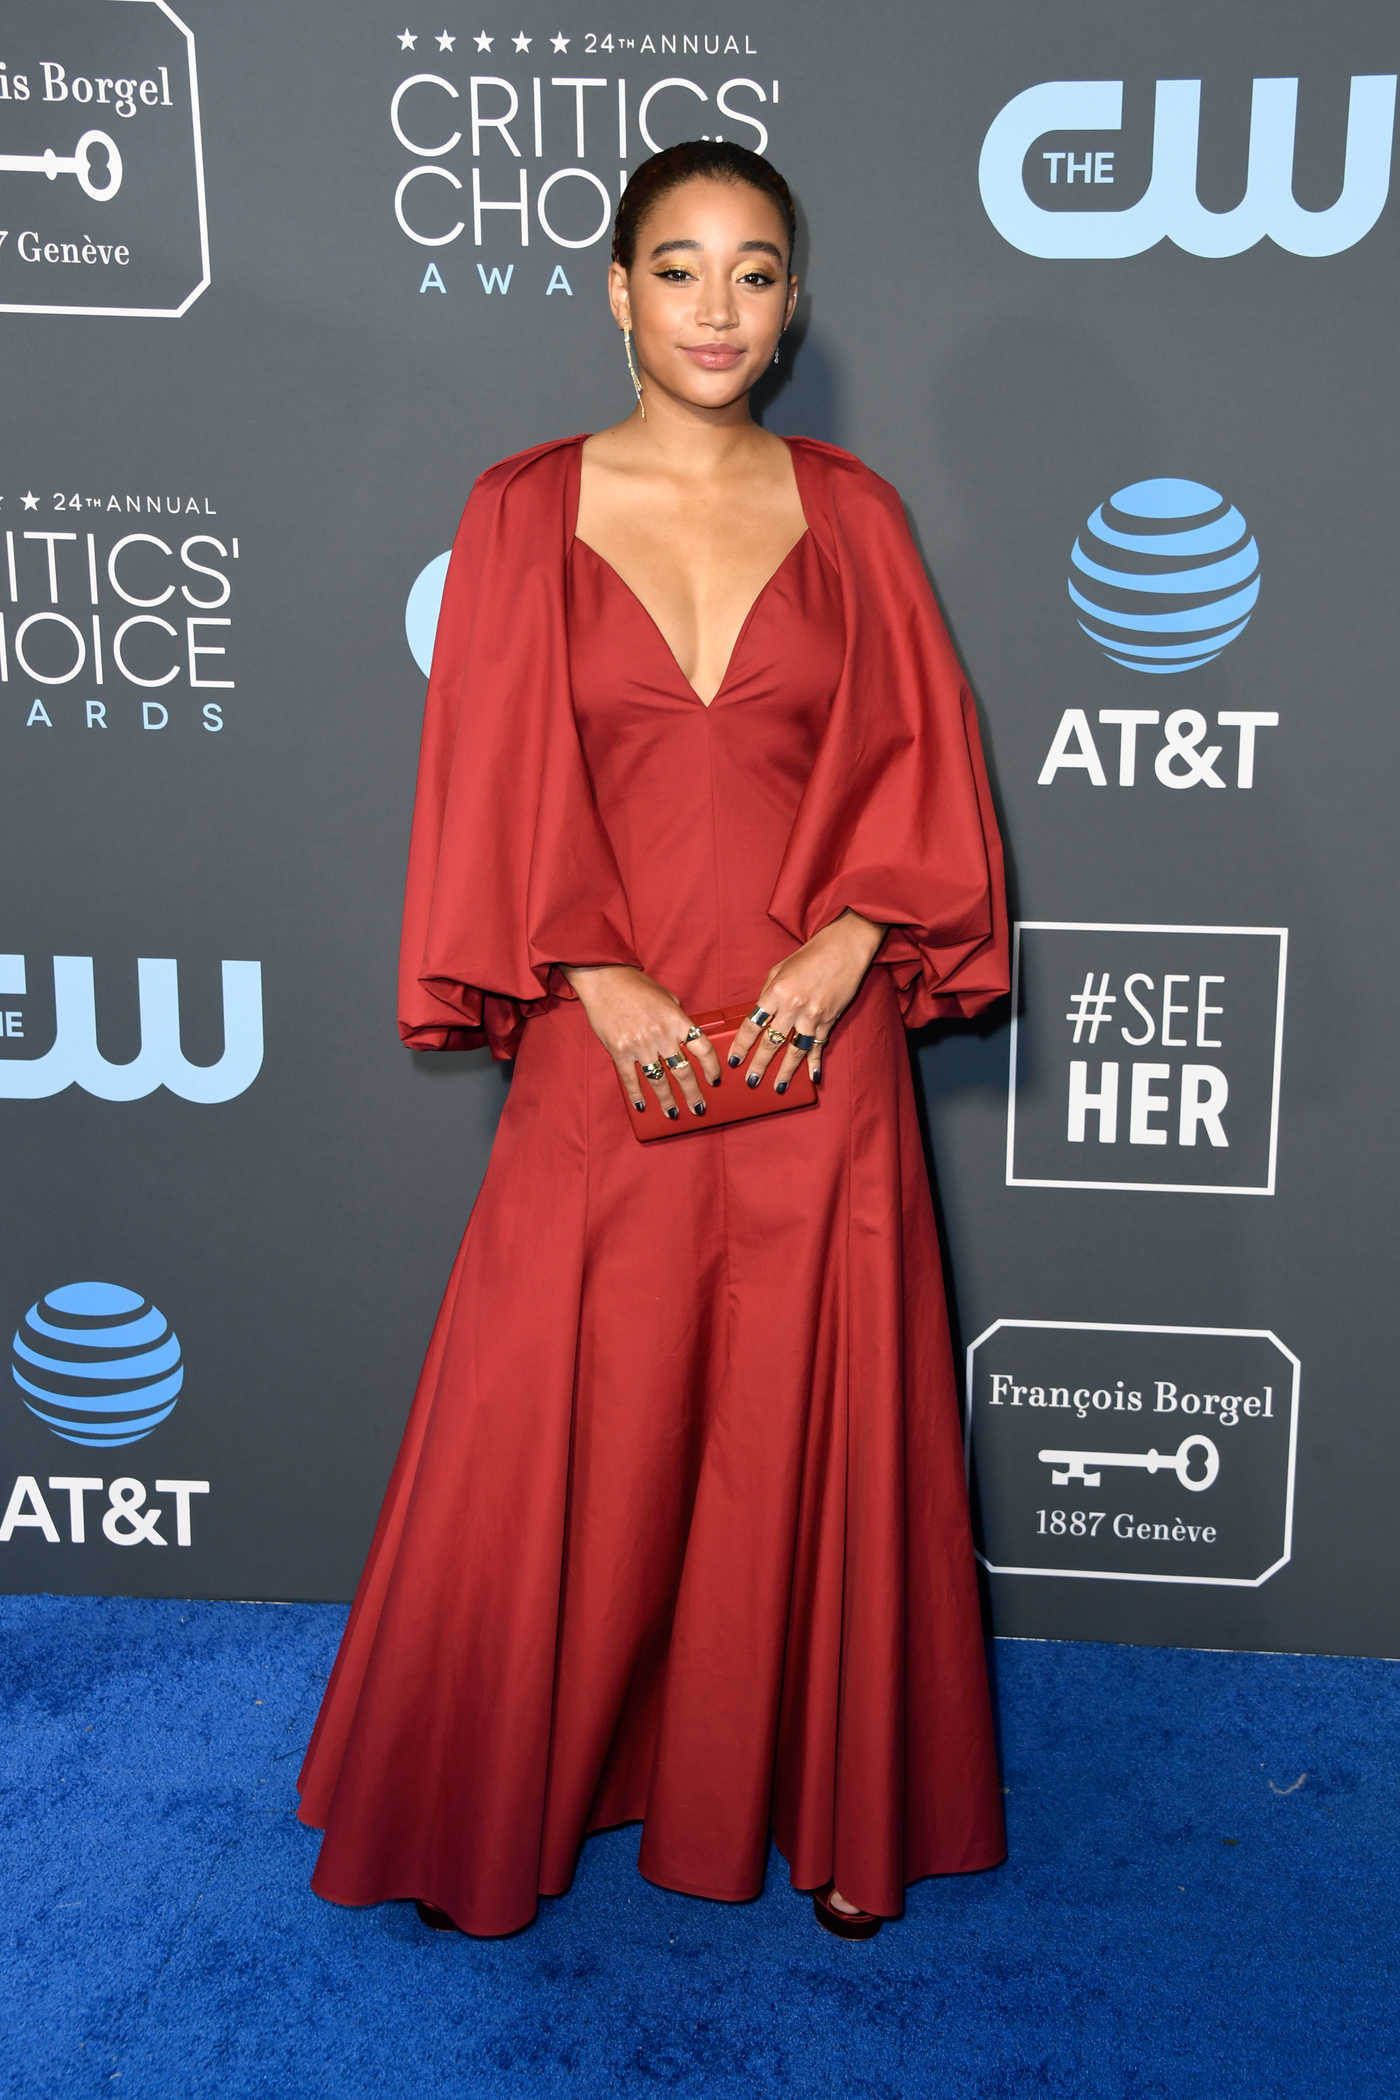 Amandla Stenberg Attends the 24th Annual Critics' Choice Awards at Barker Hangar in Santa Monica 01/13/2019